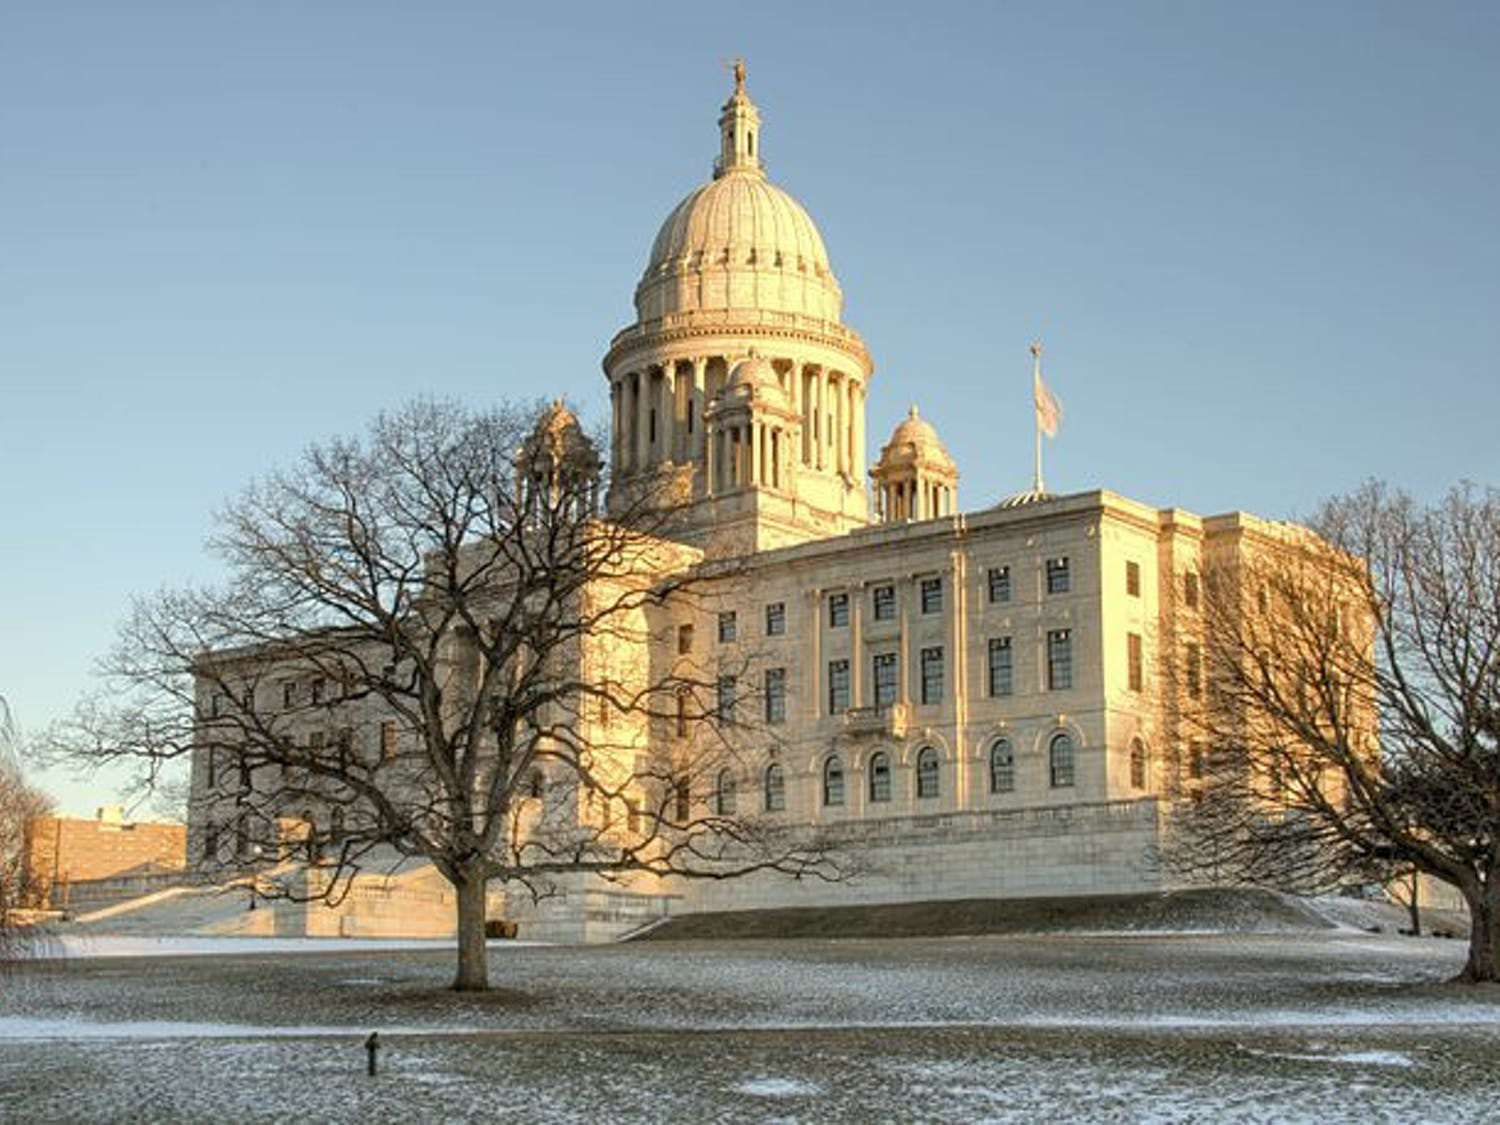 A_view_of_the_Rhode_Island_State_House-1